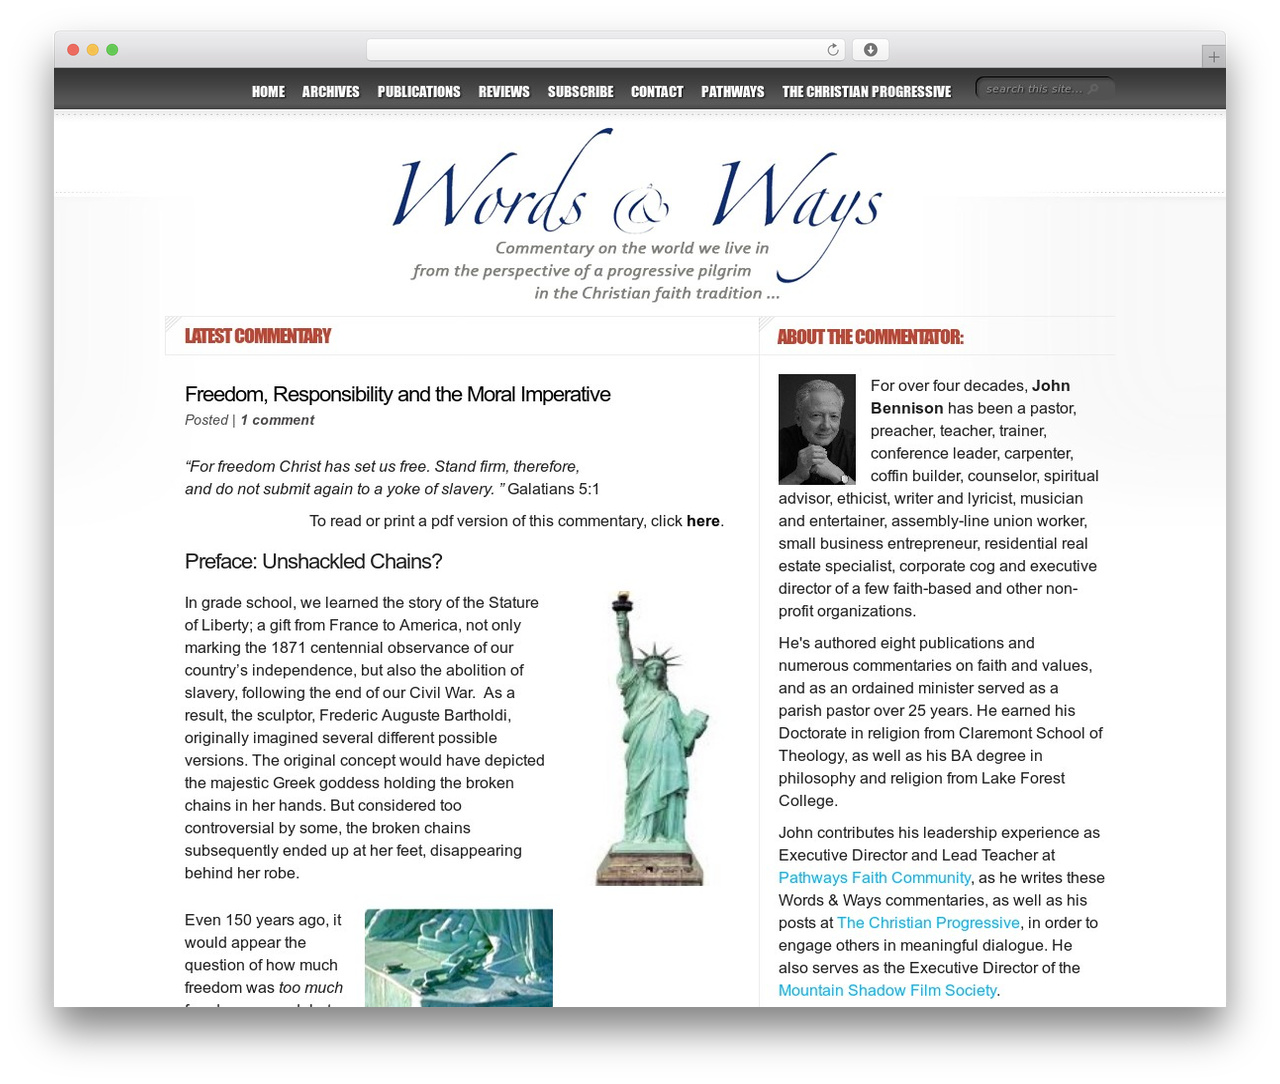 Delicate News best WordPress magazine theme - wordsnways.com